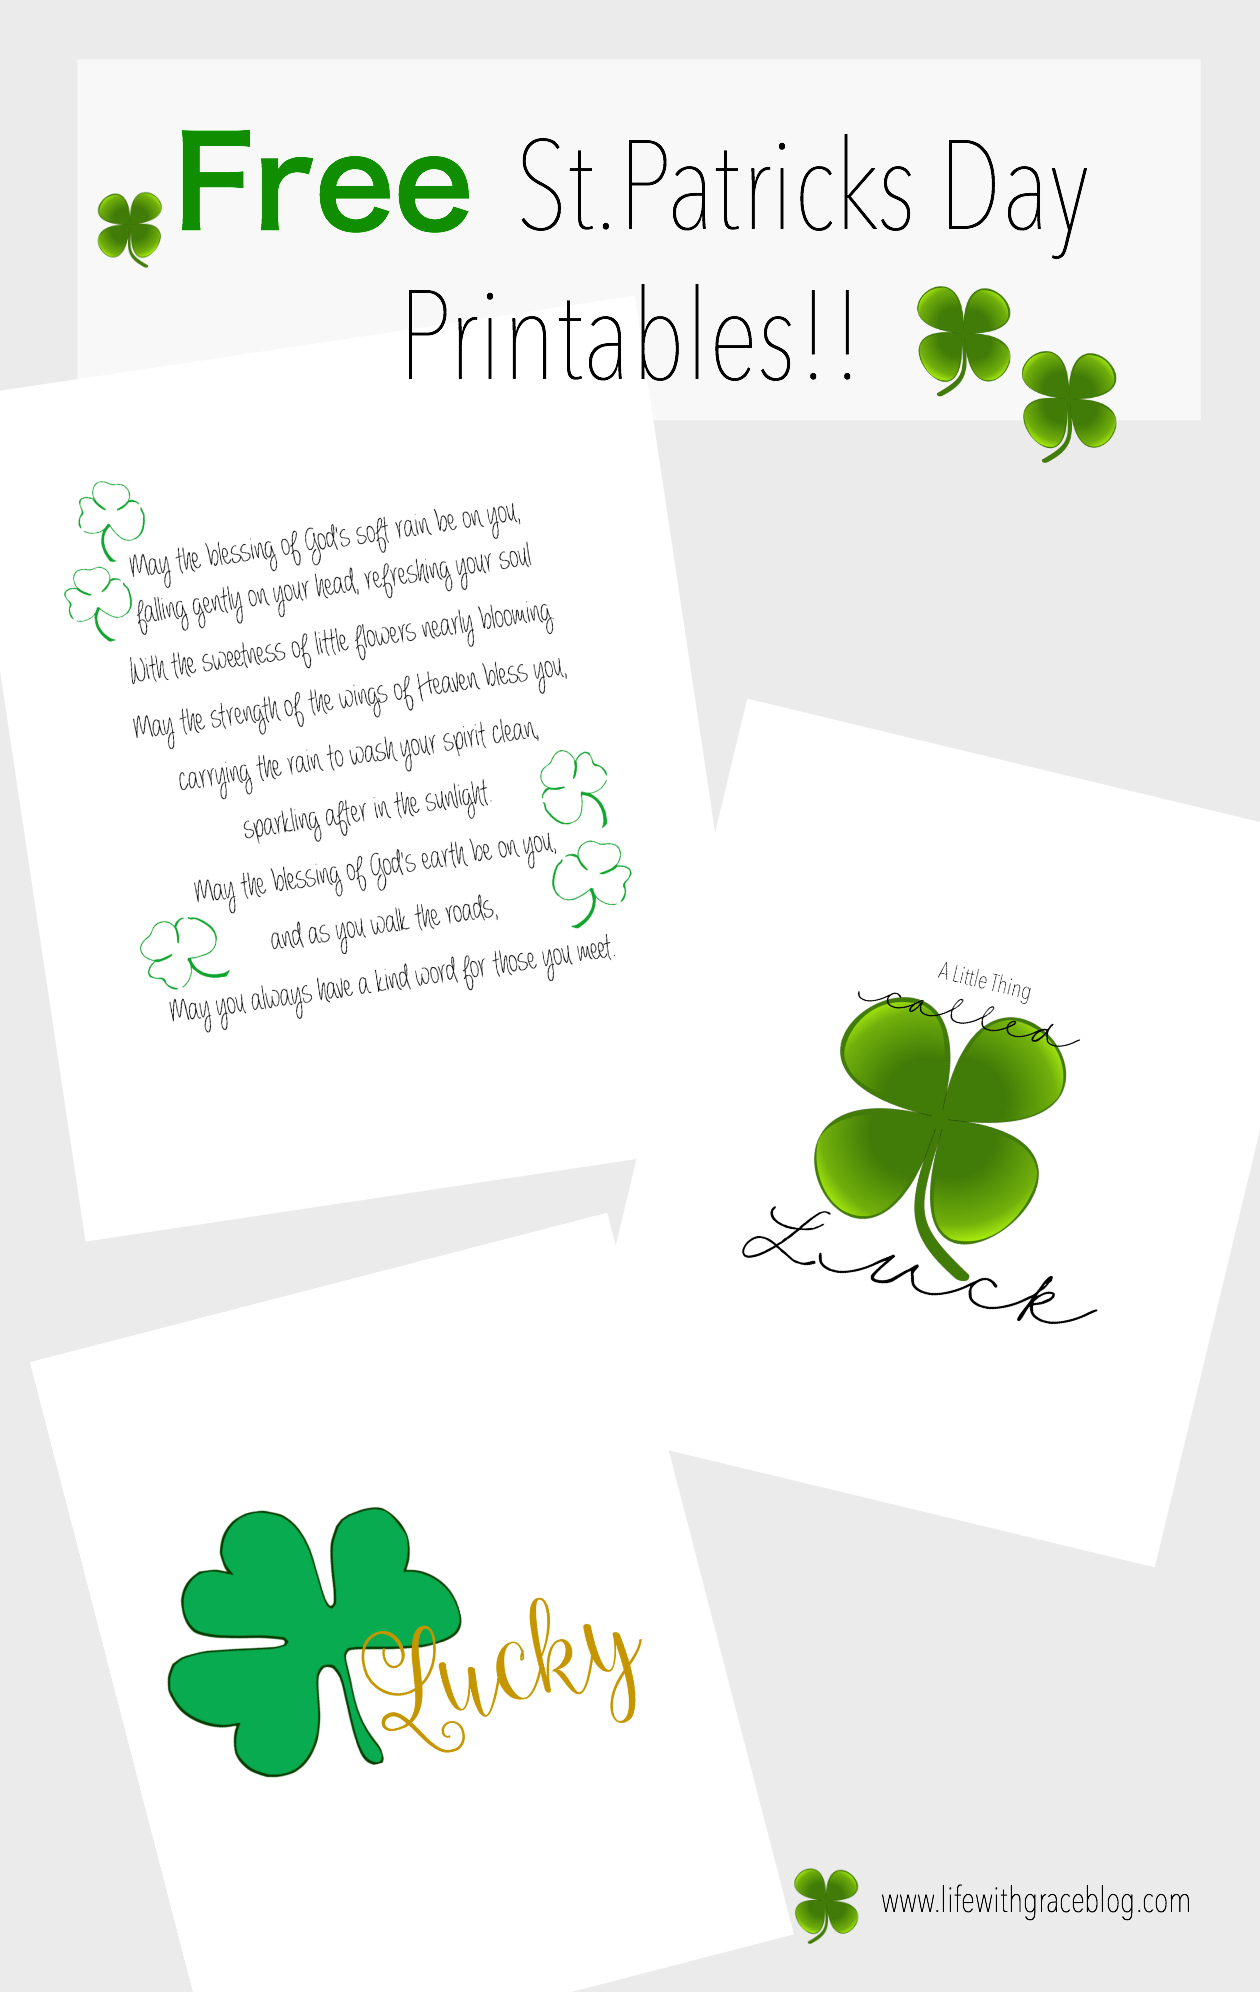 St. Patricks Day Free Printables - Life With Grace - Free St Patrick's Day Printables